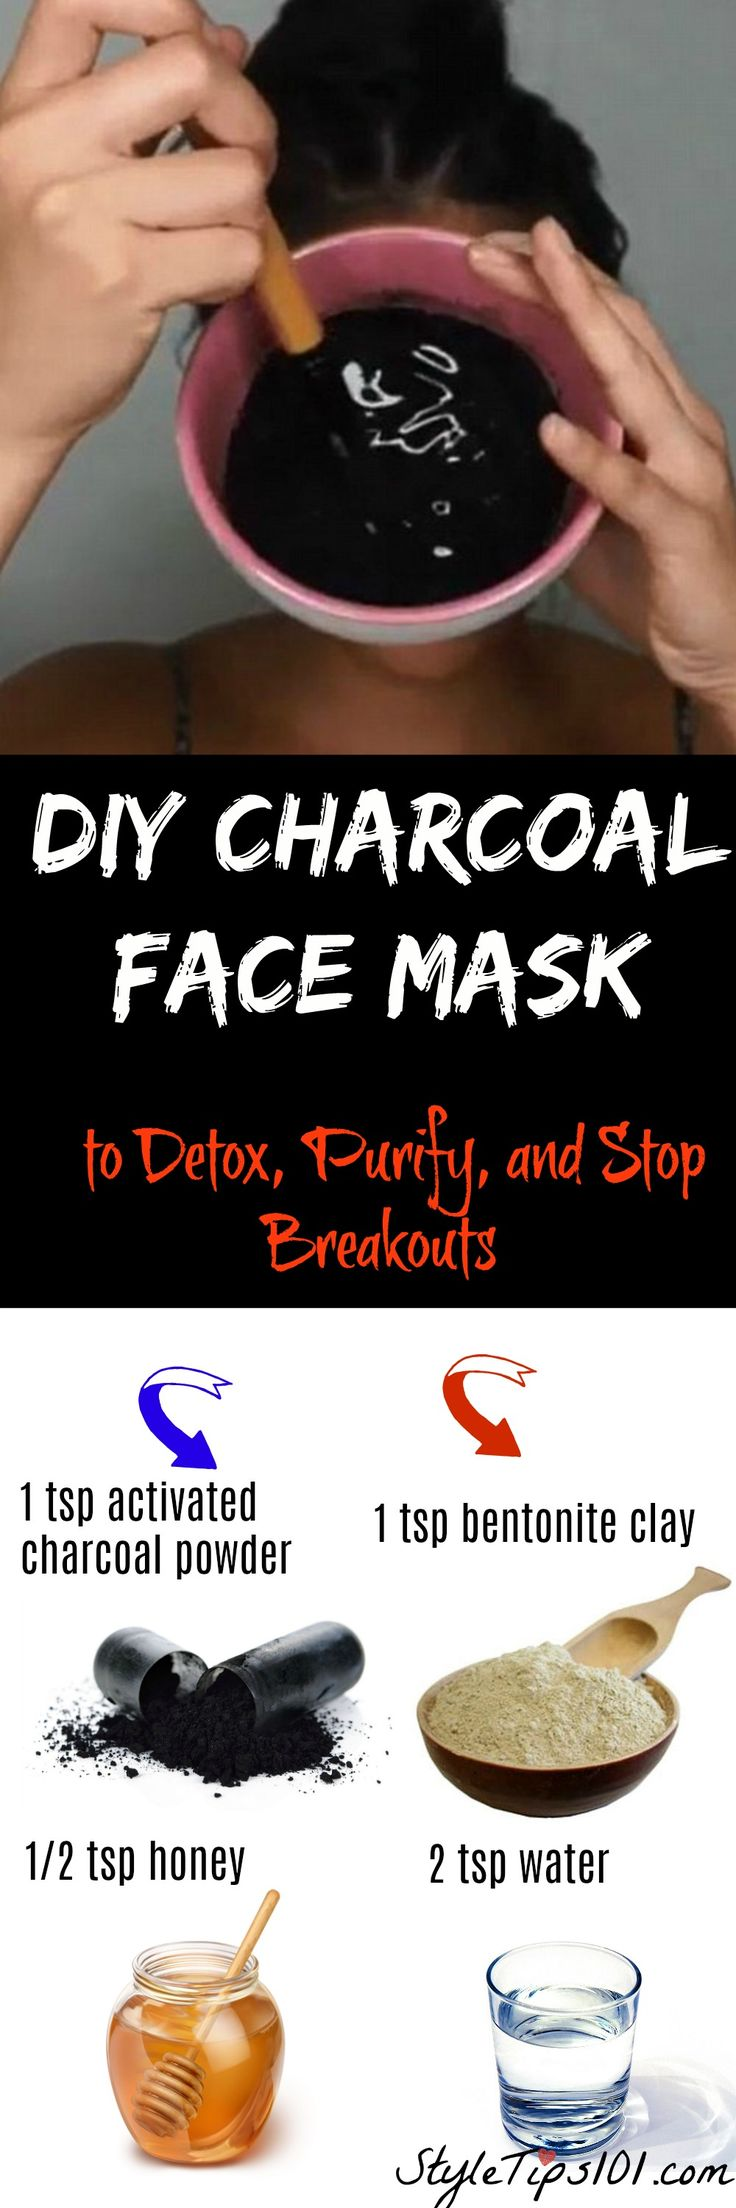 1 tsp bentonite clay  1 tsp activated charcoal powder  2 tsp water  1/2 tsp raw honey  1 drop essential lavender oil & 1 drop tea tree essential oil via @styletips1o1